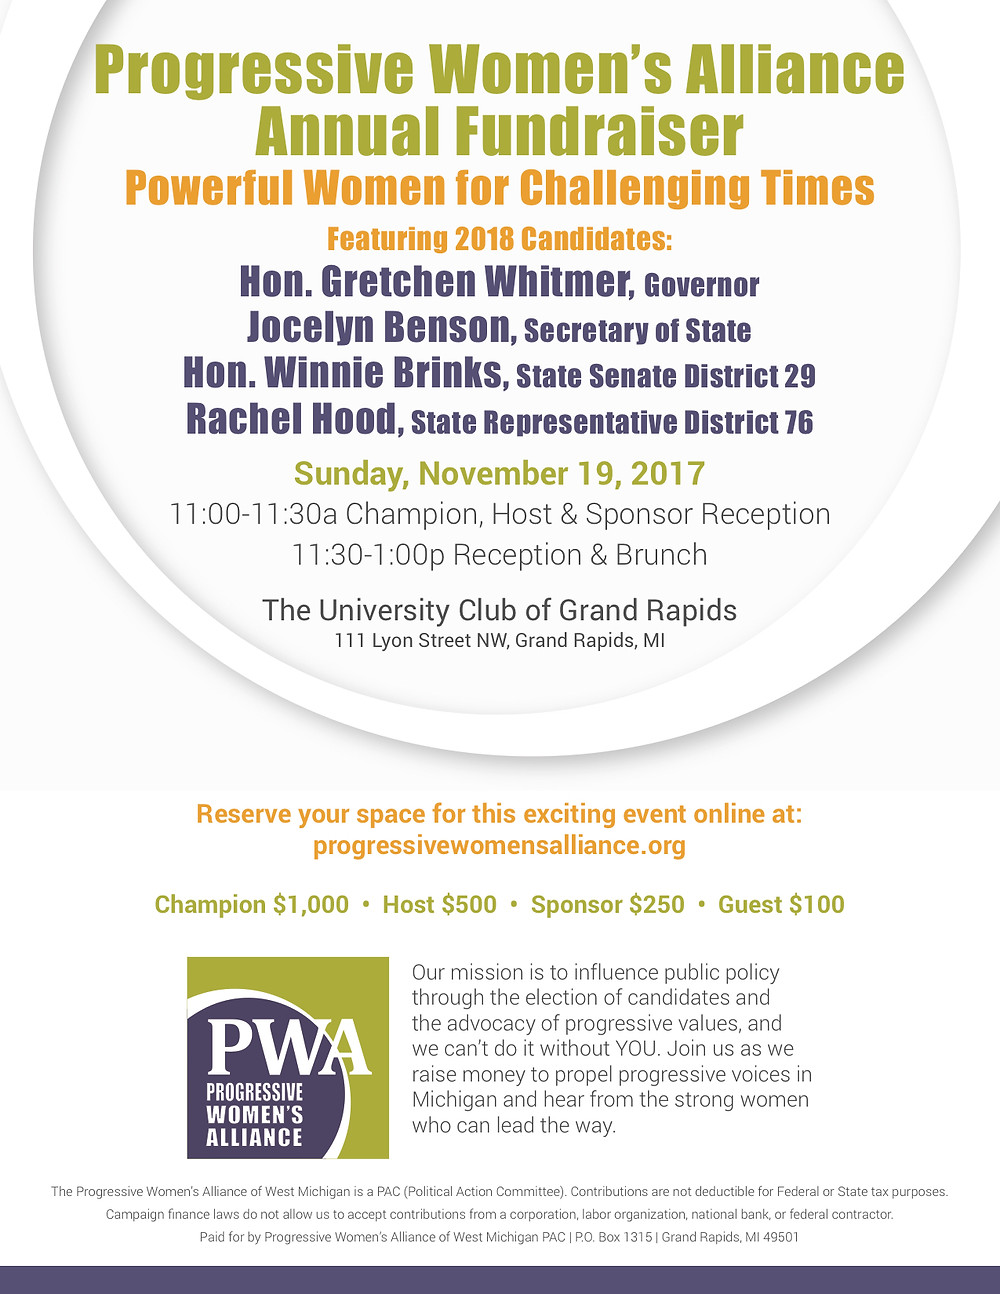 PWA, 11.19.17, Powerful Women for Challenging Times, Annual Fundraiser